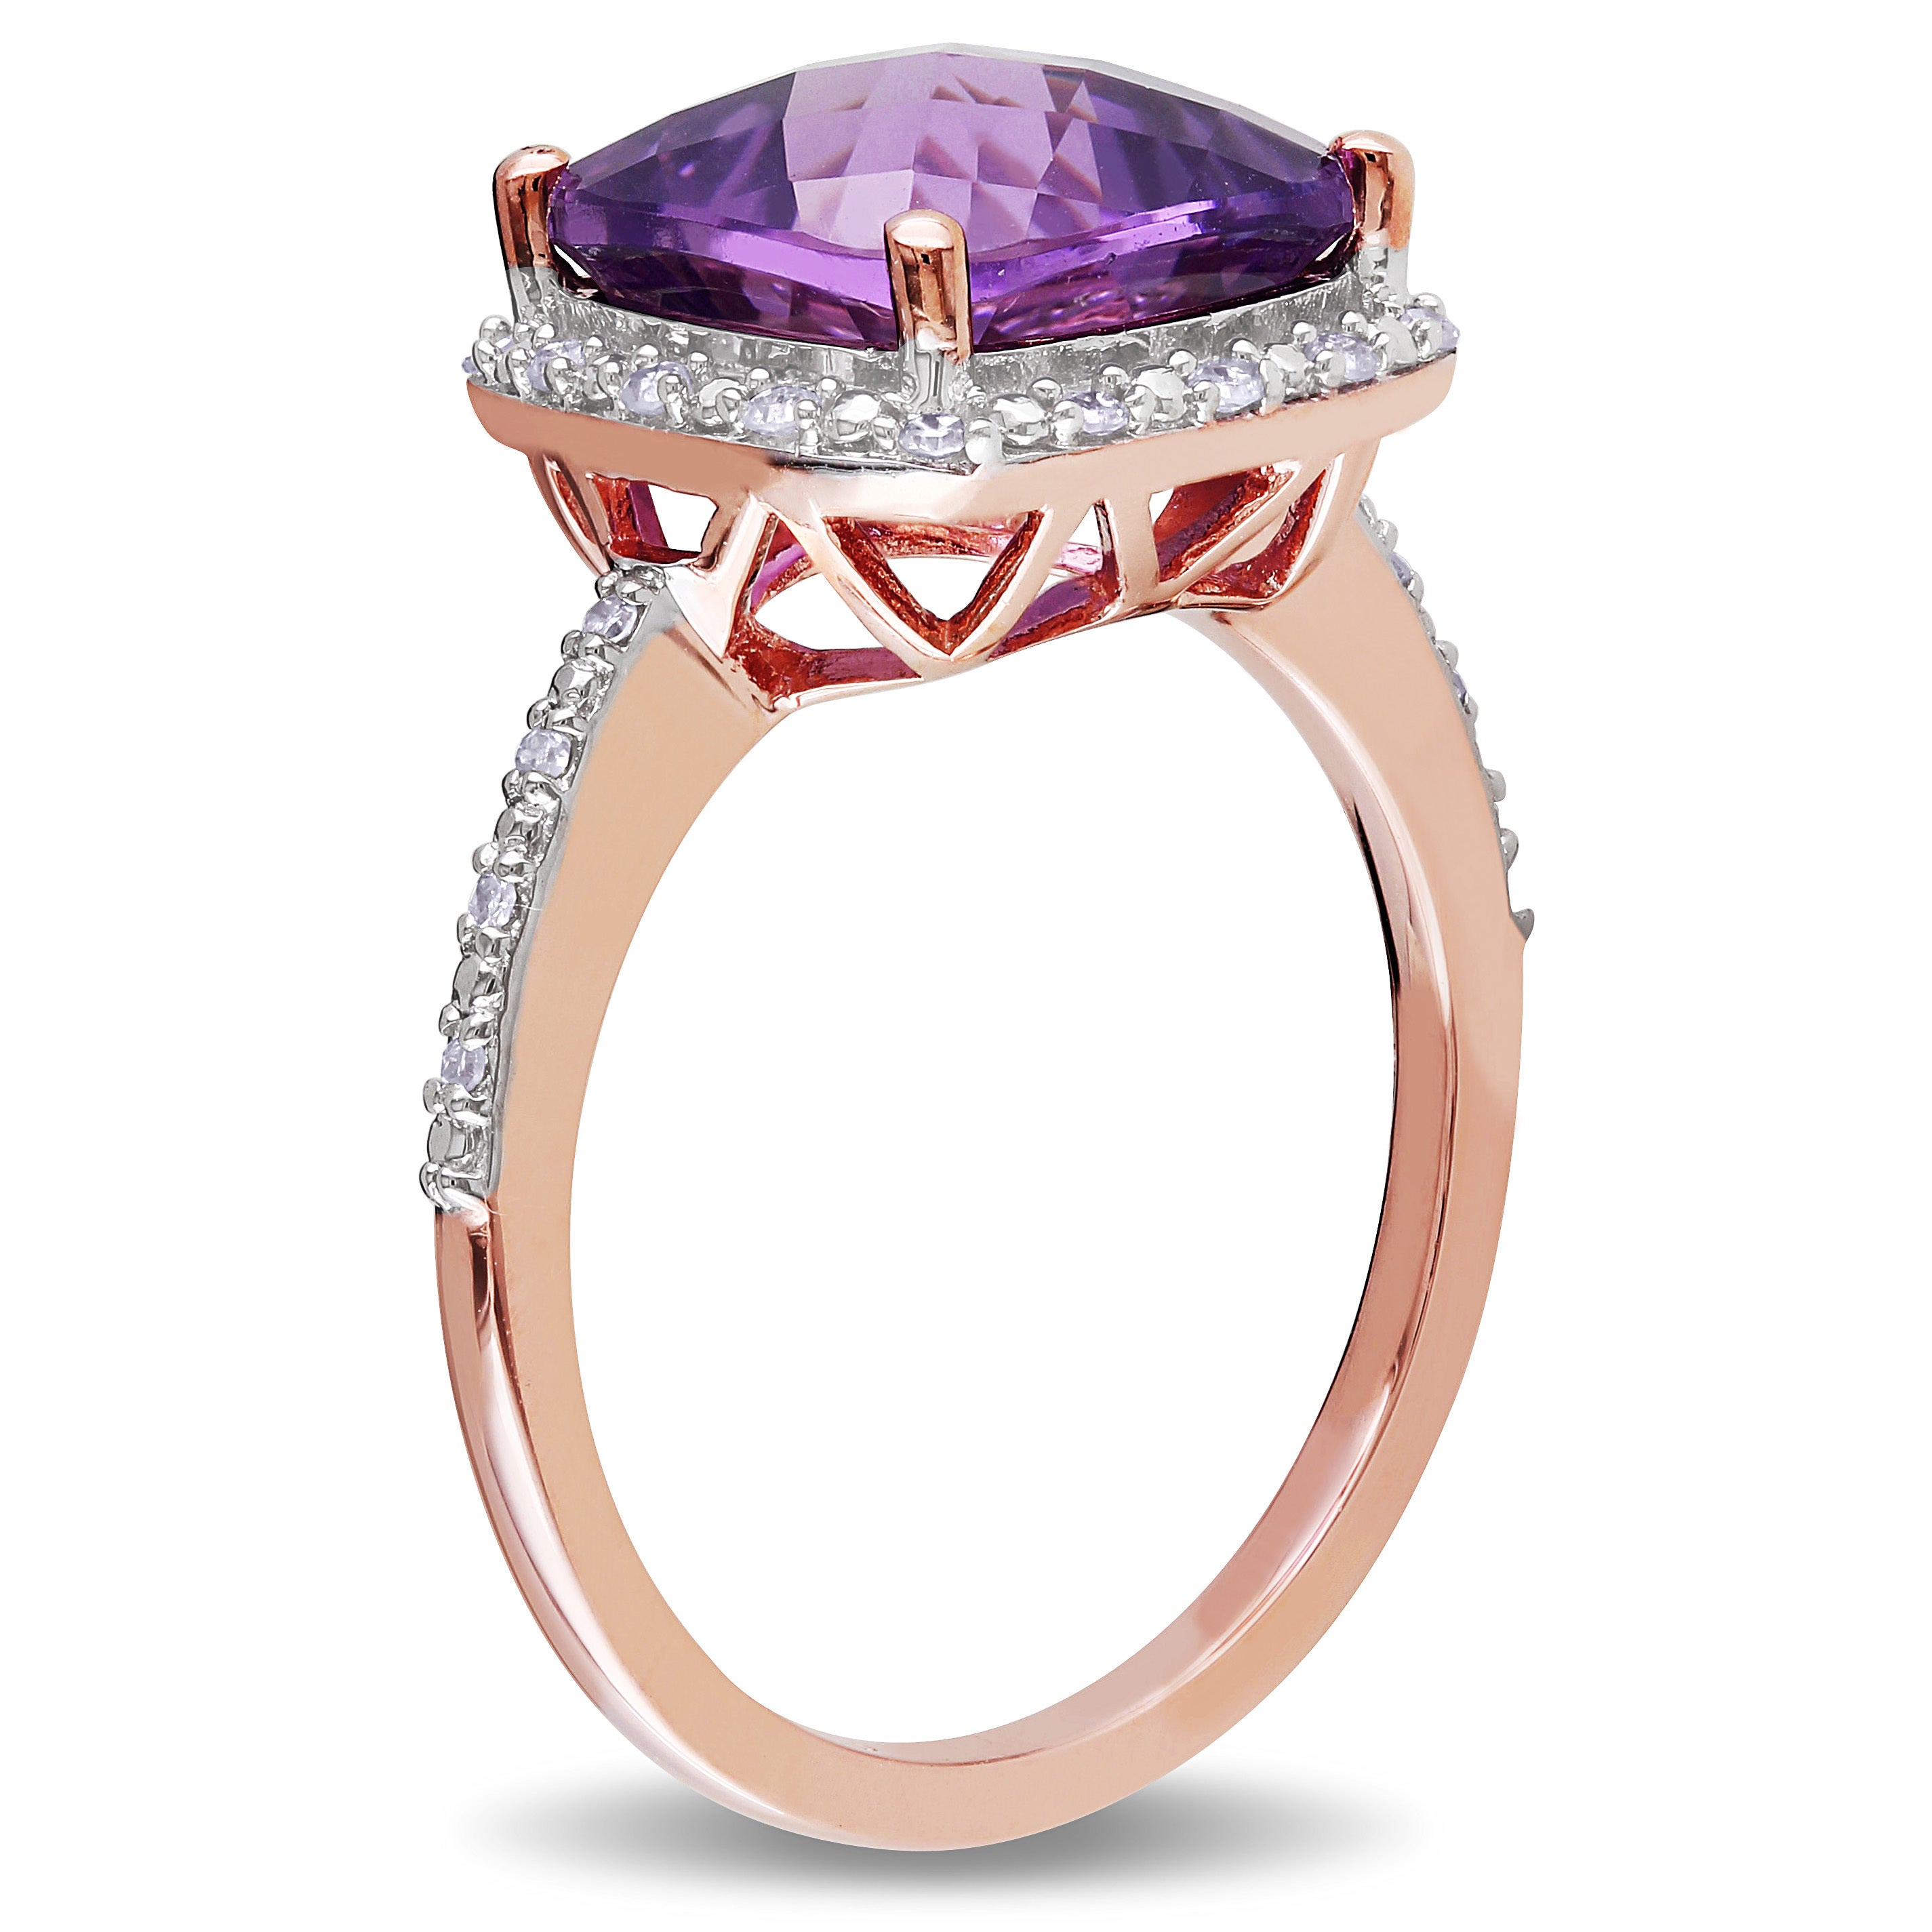 vegas engagement ring wise amethist jewellery green rings mg amethyst stone product